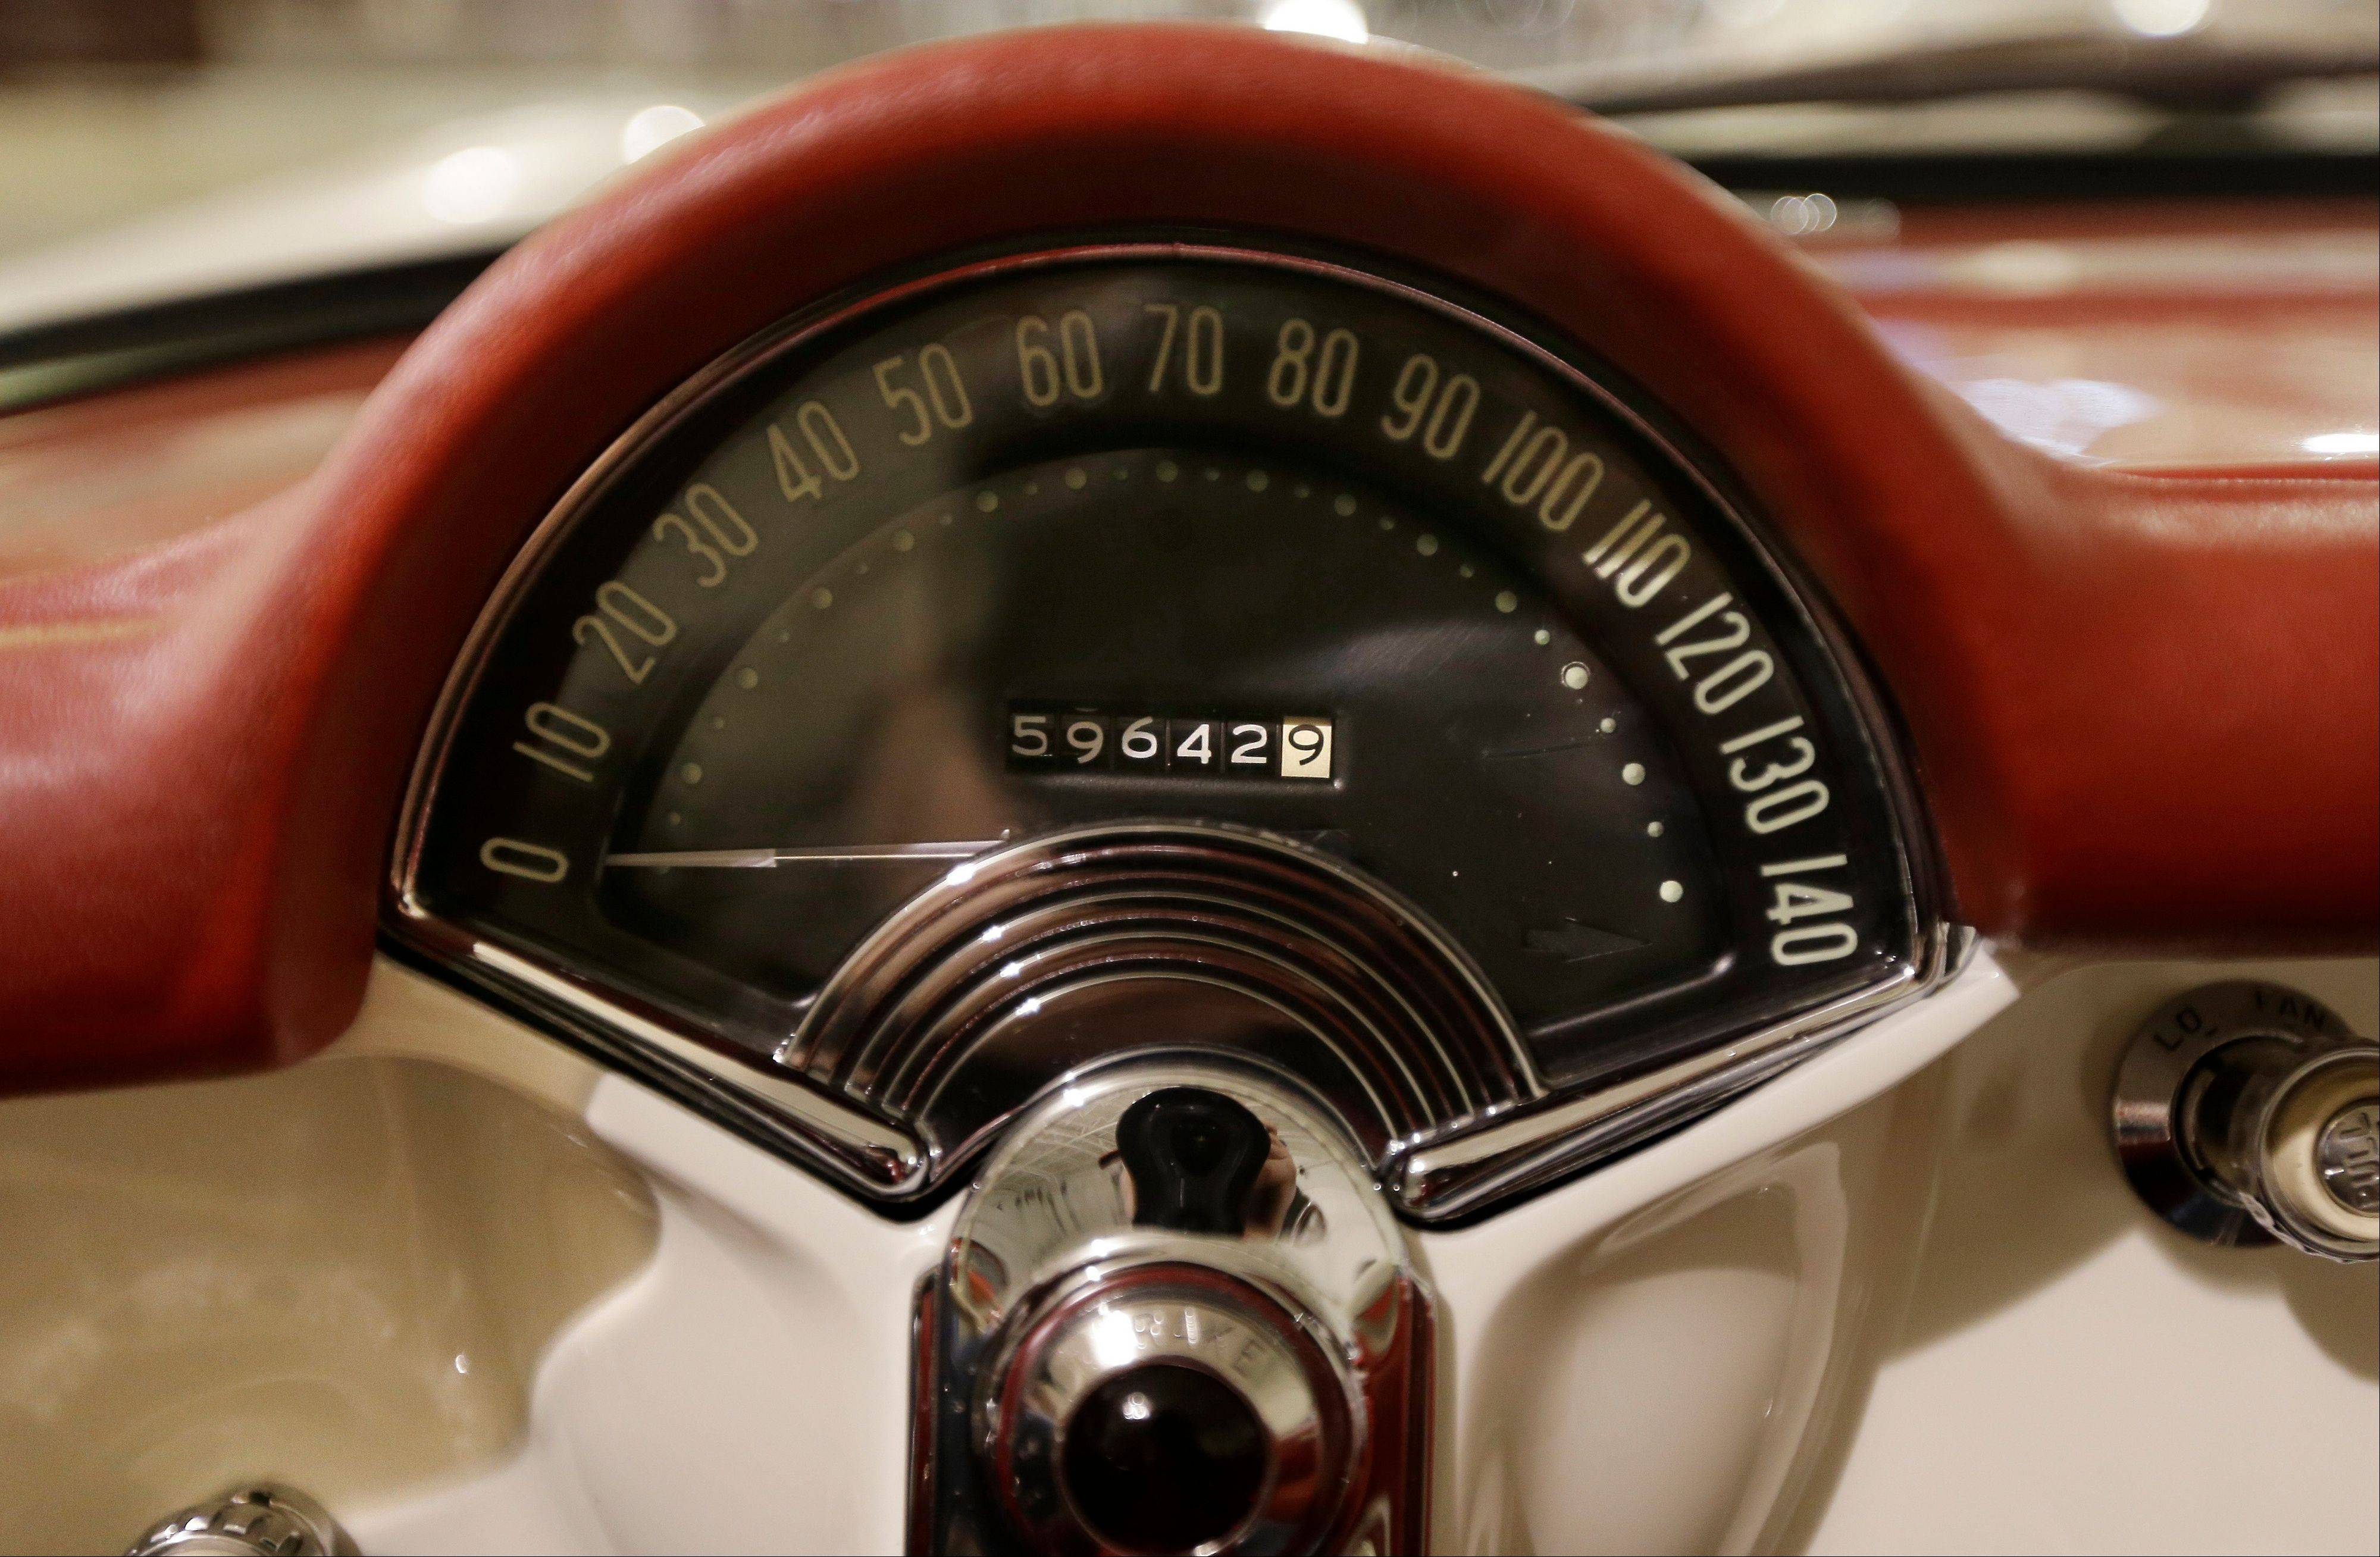 The speedometer of a 1953 Corvette is seen at the GM Heritage Center in Sterling Heights, Mich. Although current cars with high-horsepower engines can come close to the top speedometer speeds, most are limited by engine control computers. That's because the tires can overheat and fail at higher speeds.